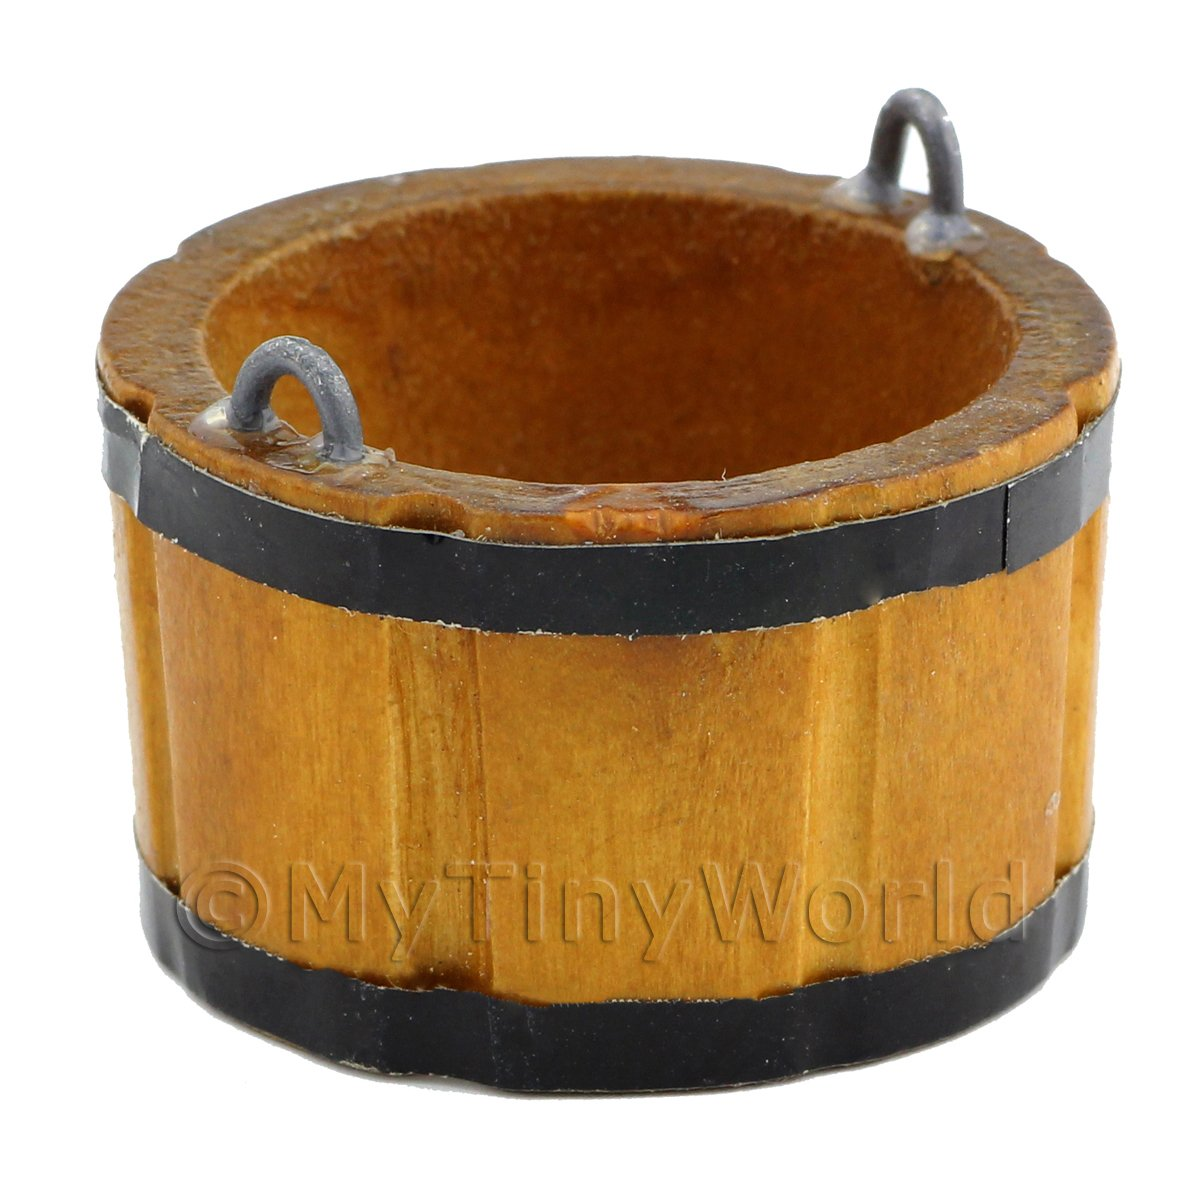 Dolls House Miniature Large Wooden Bucket / Churn